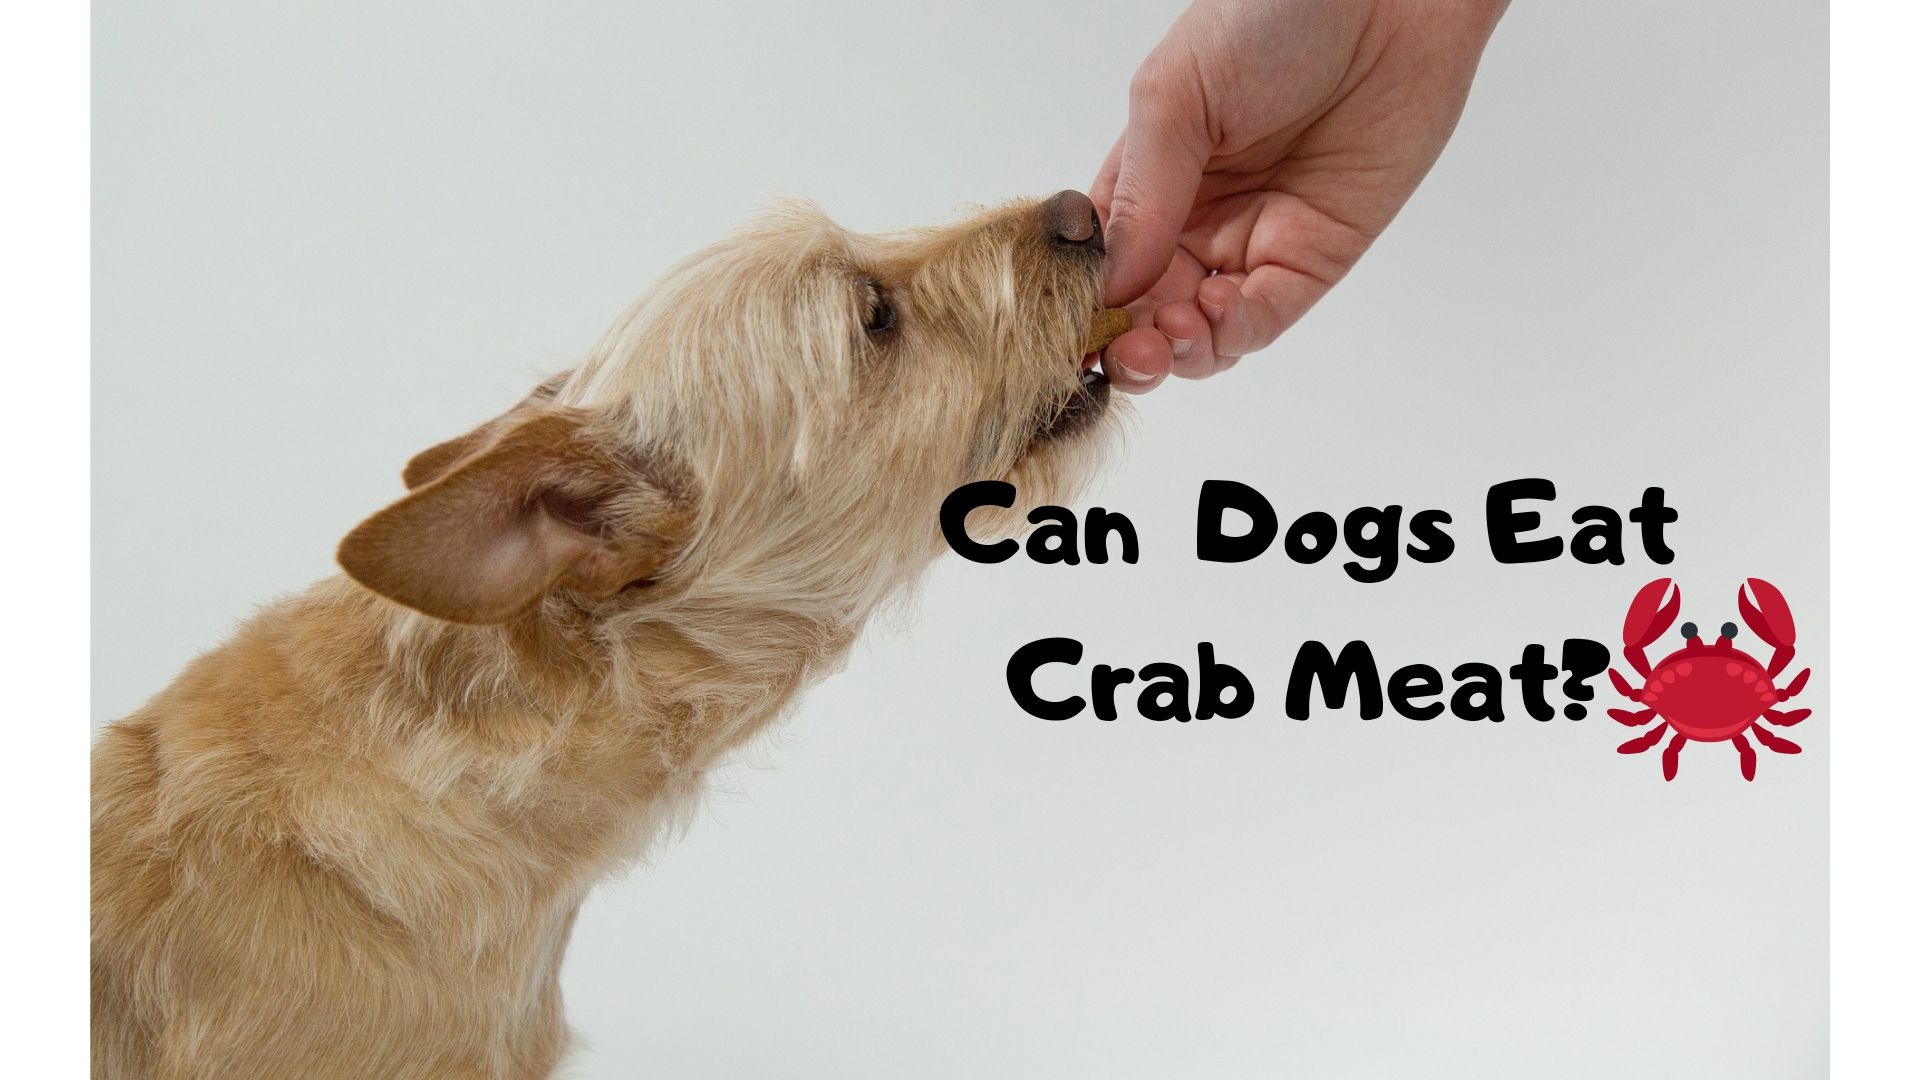 Can dogs eat crab meat?